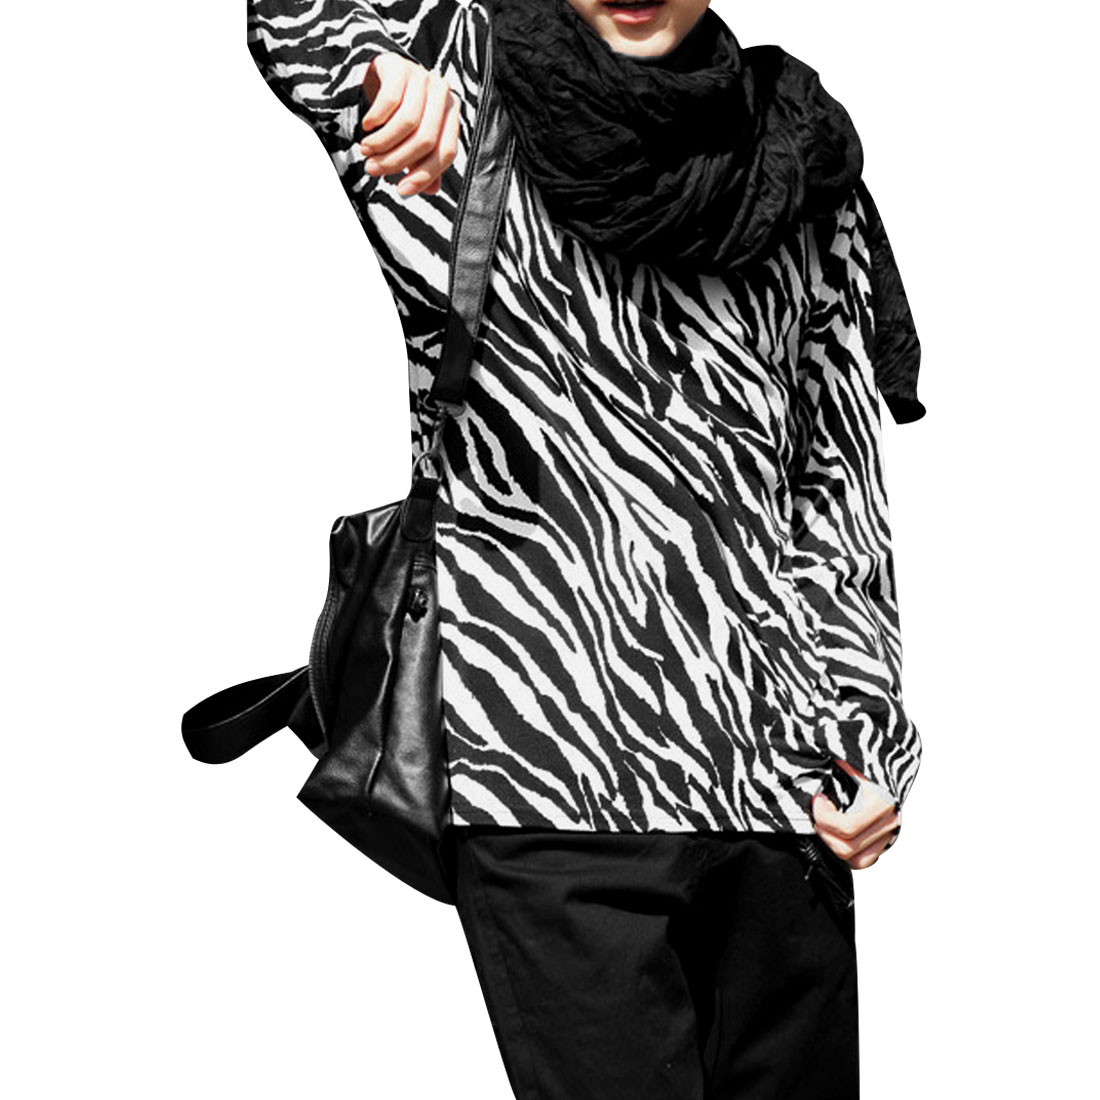 Men Round Neck Zebra Design Long Sleeves Black White Shirt S